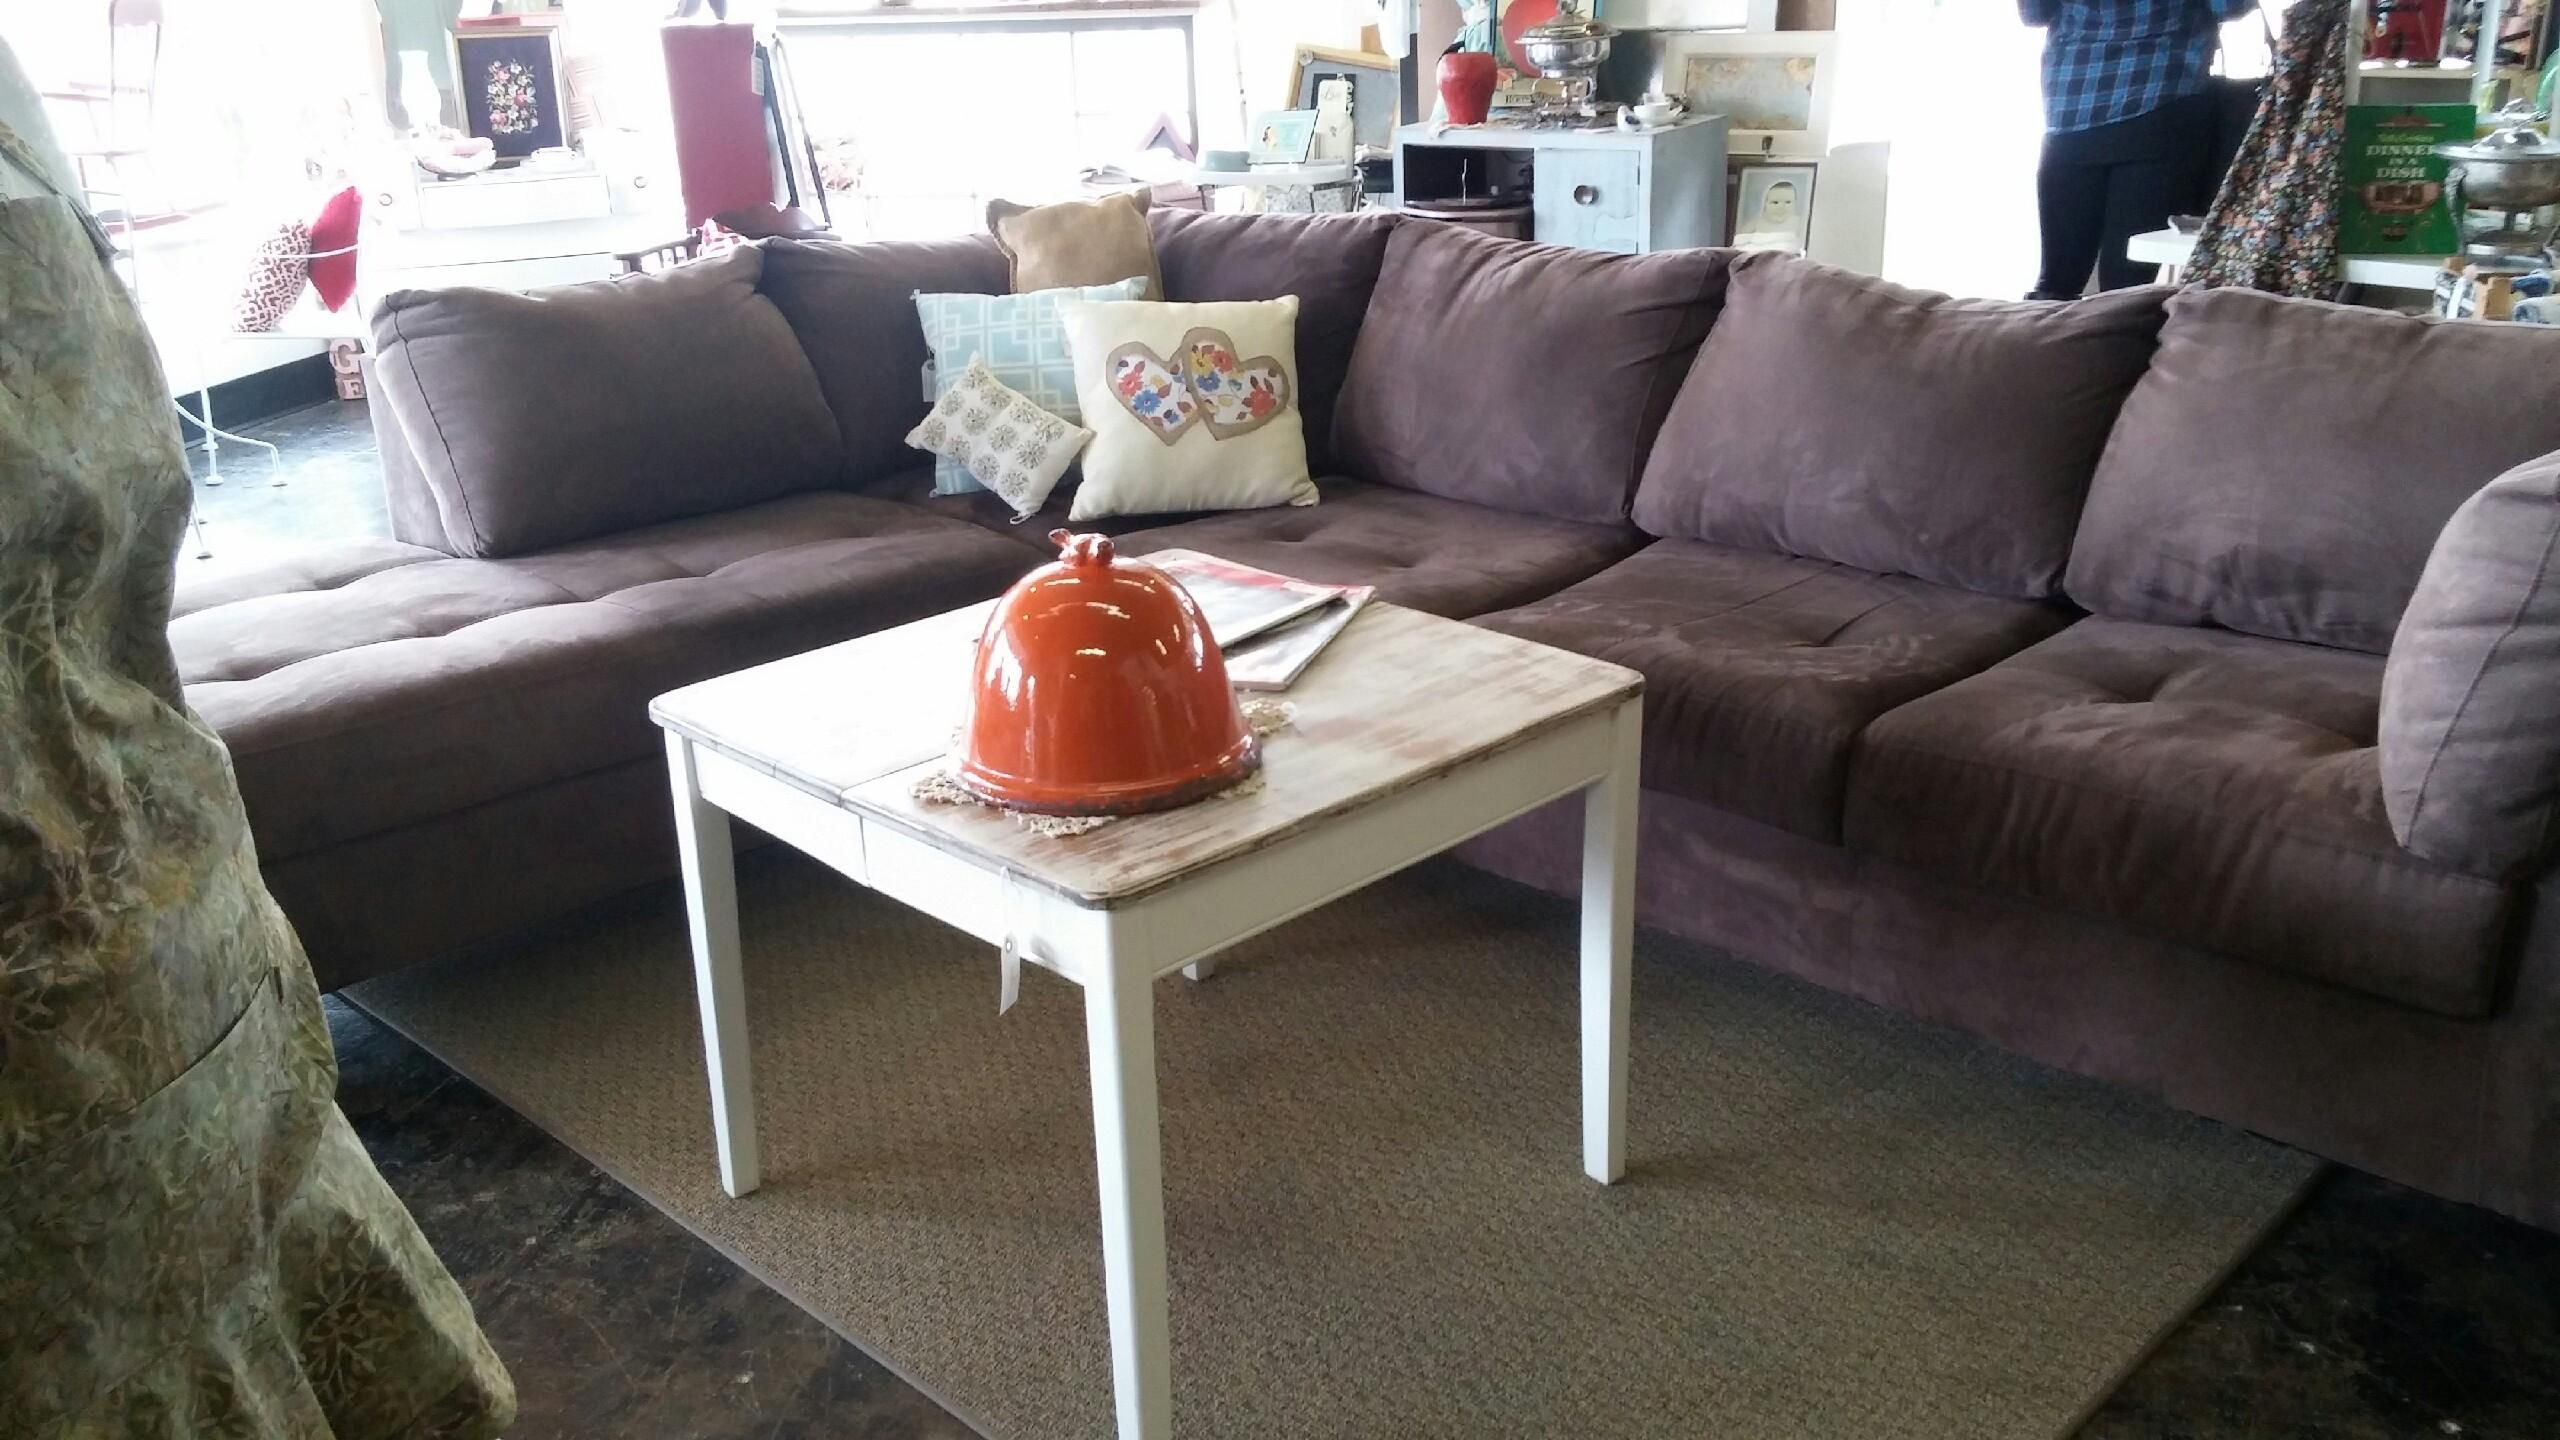 Pinmustard Seed Home Decor & More On Furniture For French Seamed Sectional Sofas Oblong Mustard (View 7 of 15)